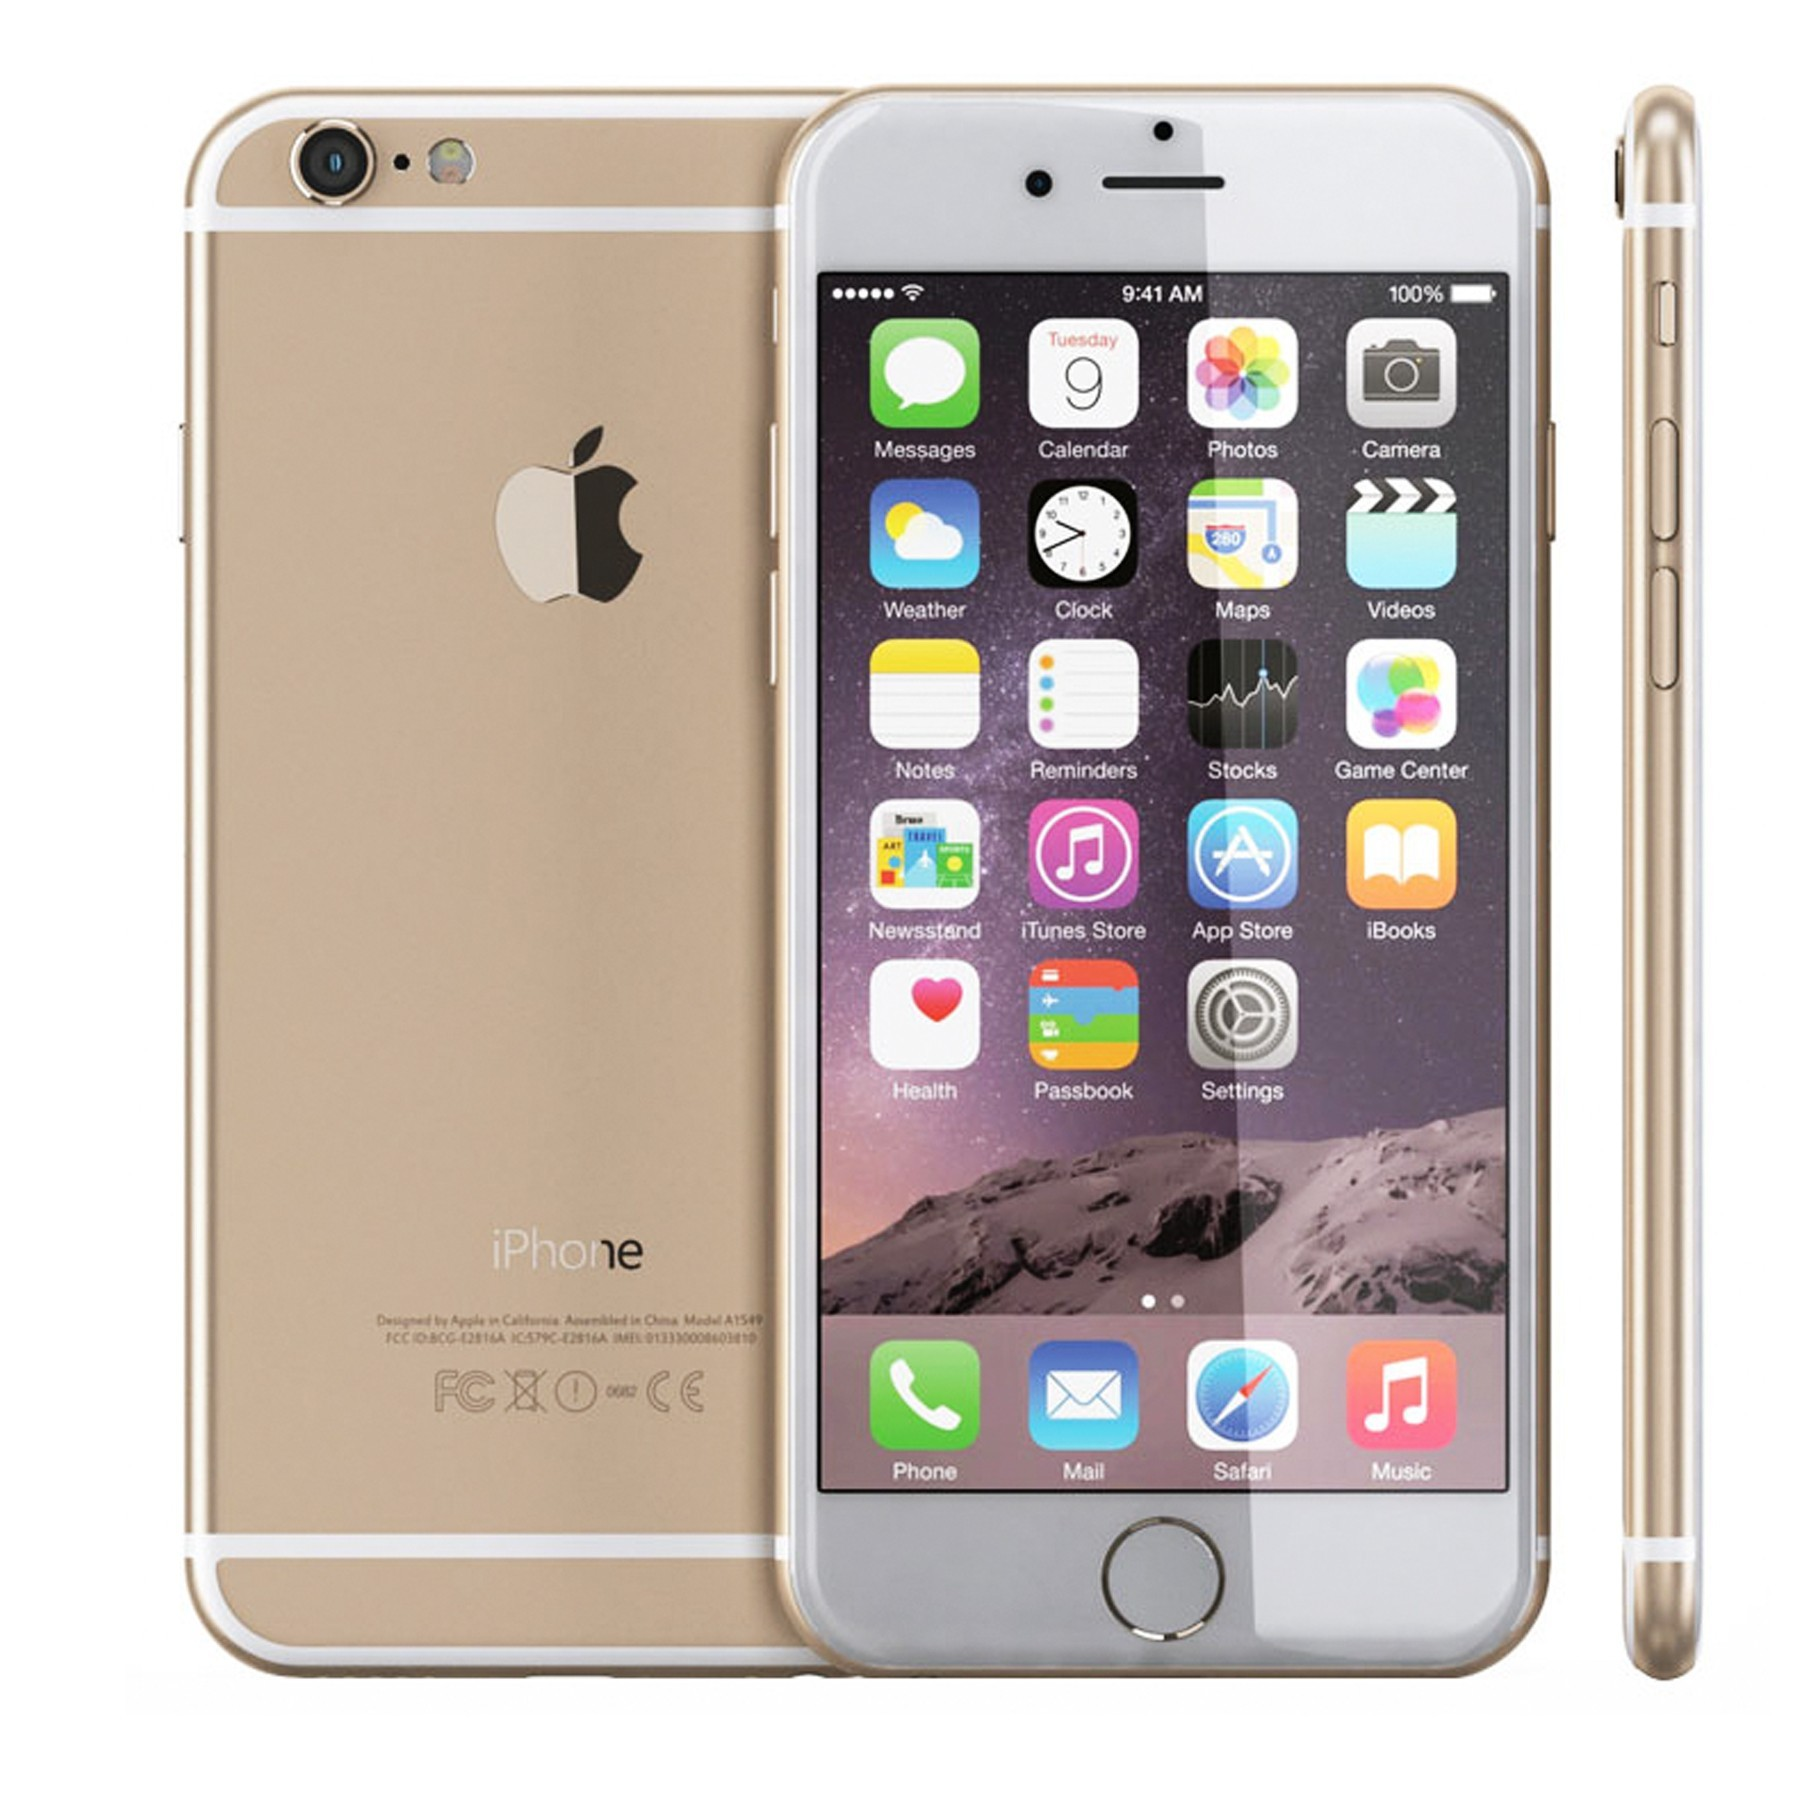 iPhone 6 Plus 128G Gold Ảnh số 38367776